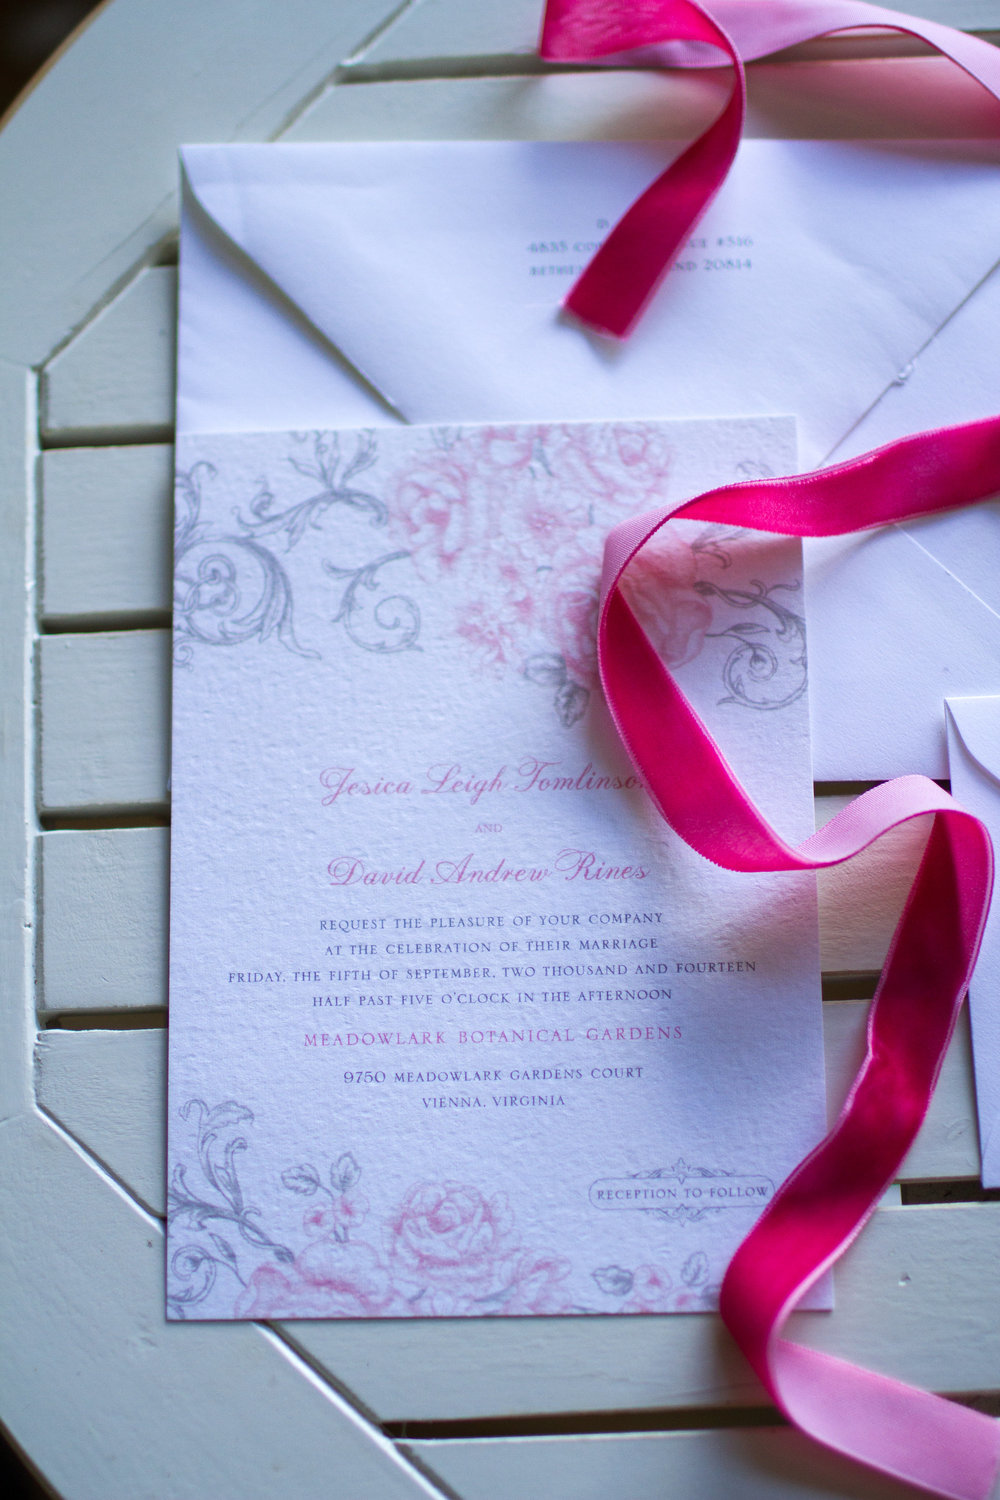 Wedding invitation suite Meadowlark Botanical Garden Wedding